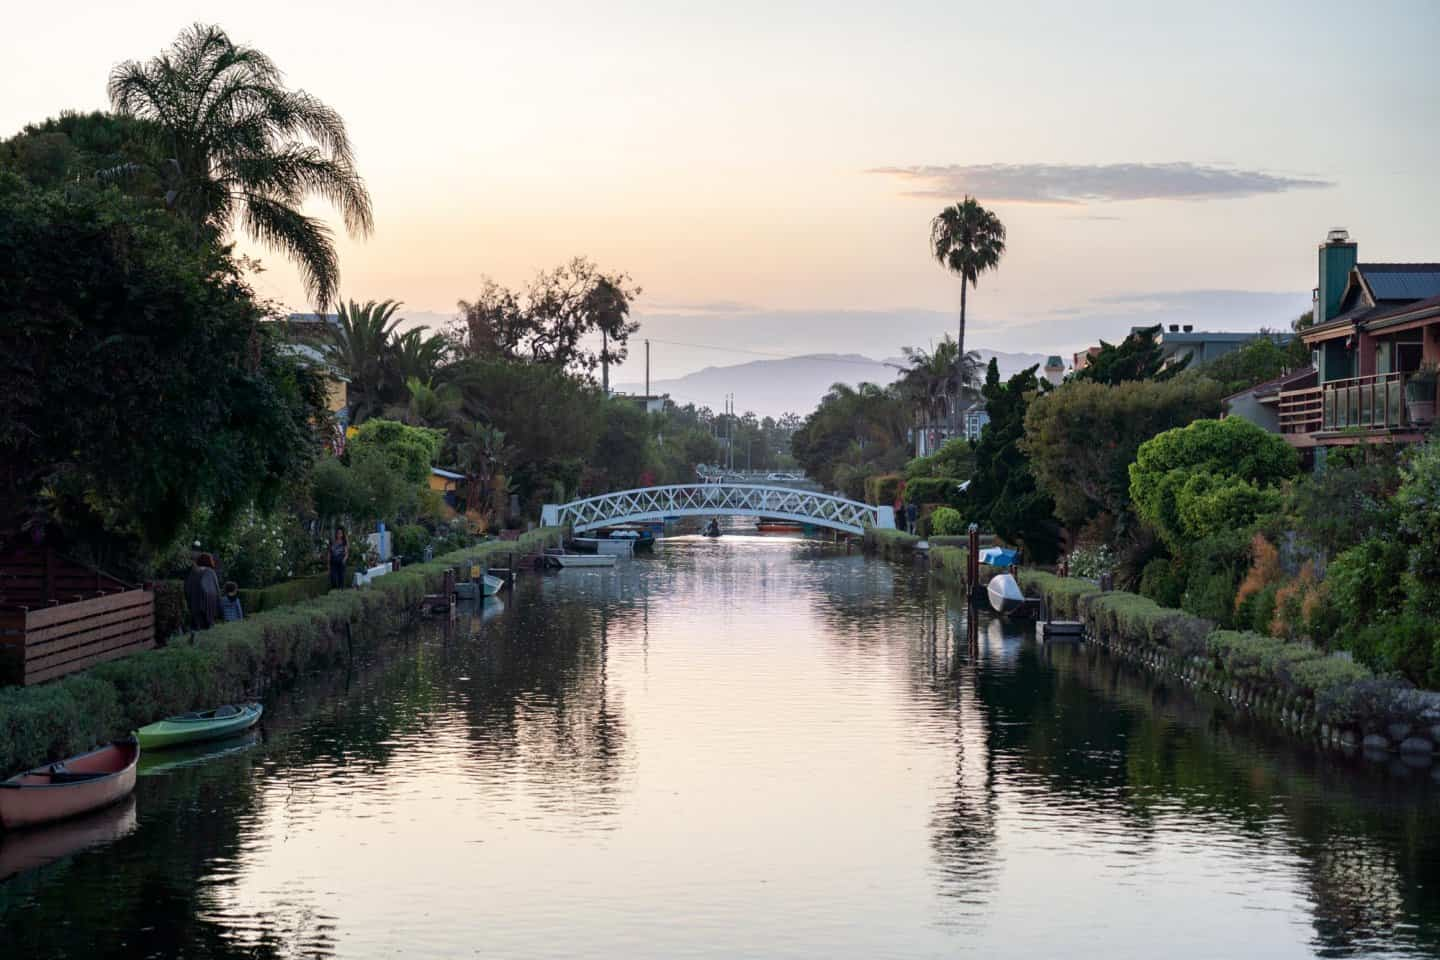 Los Angeles bucket list - Venice Canals at sunset